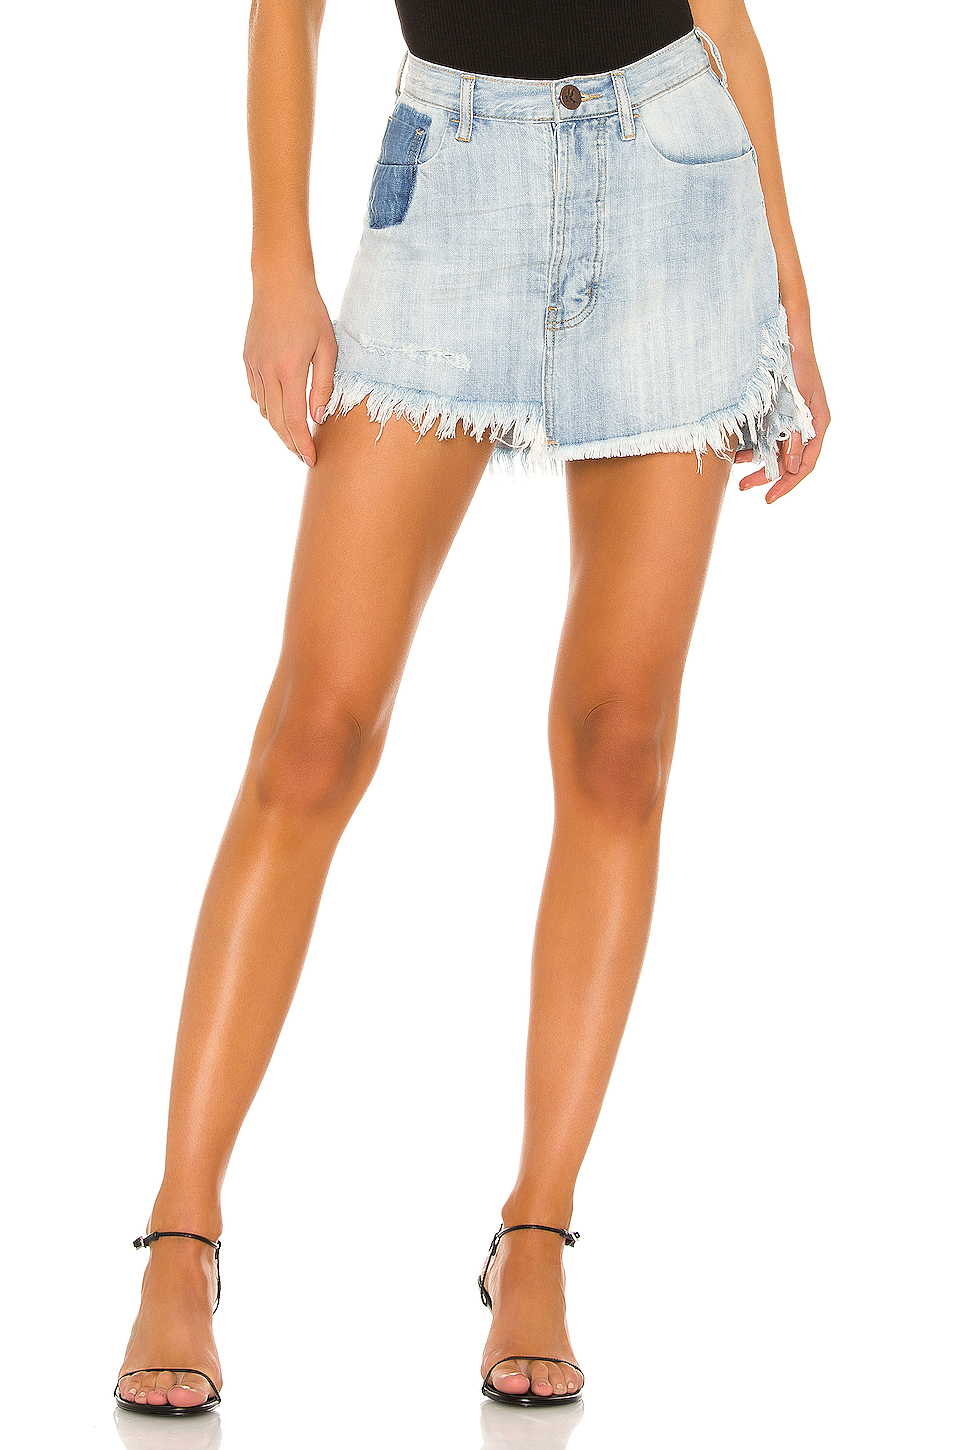 0d651689c788 Buy Original One Teaspoon Vanguard Mid Rise Relaxed Denim Mini Skirt ...